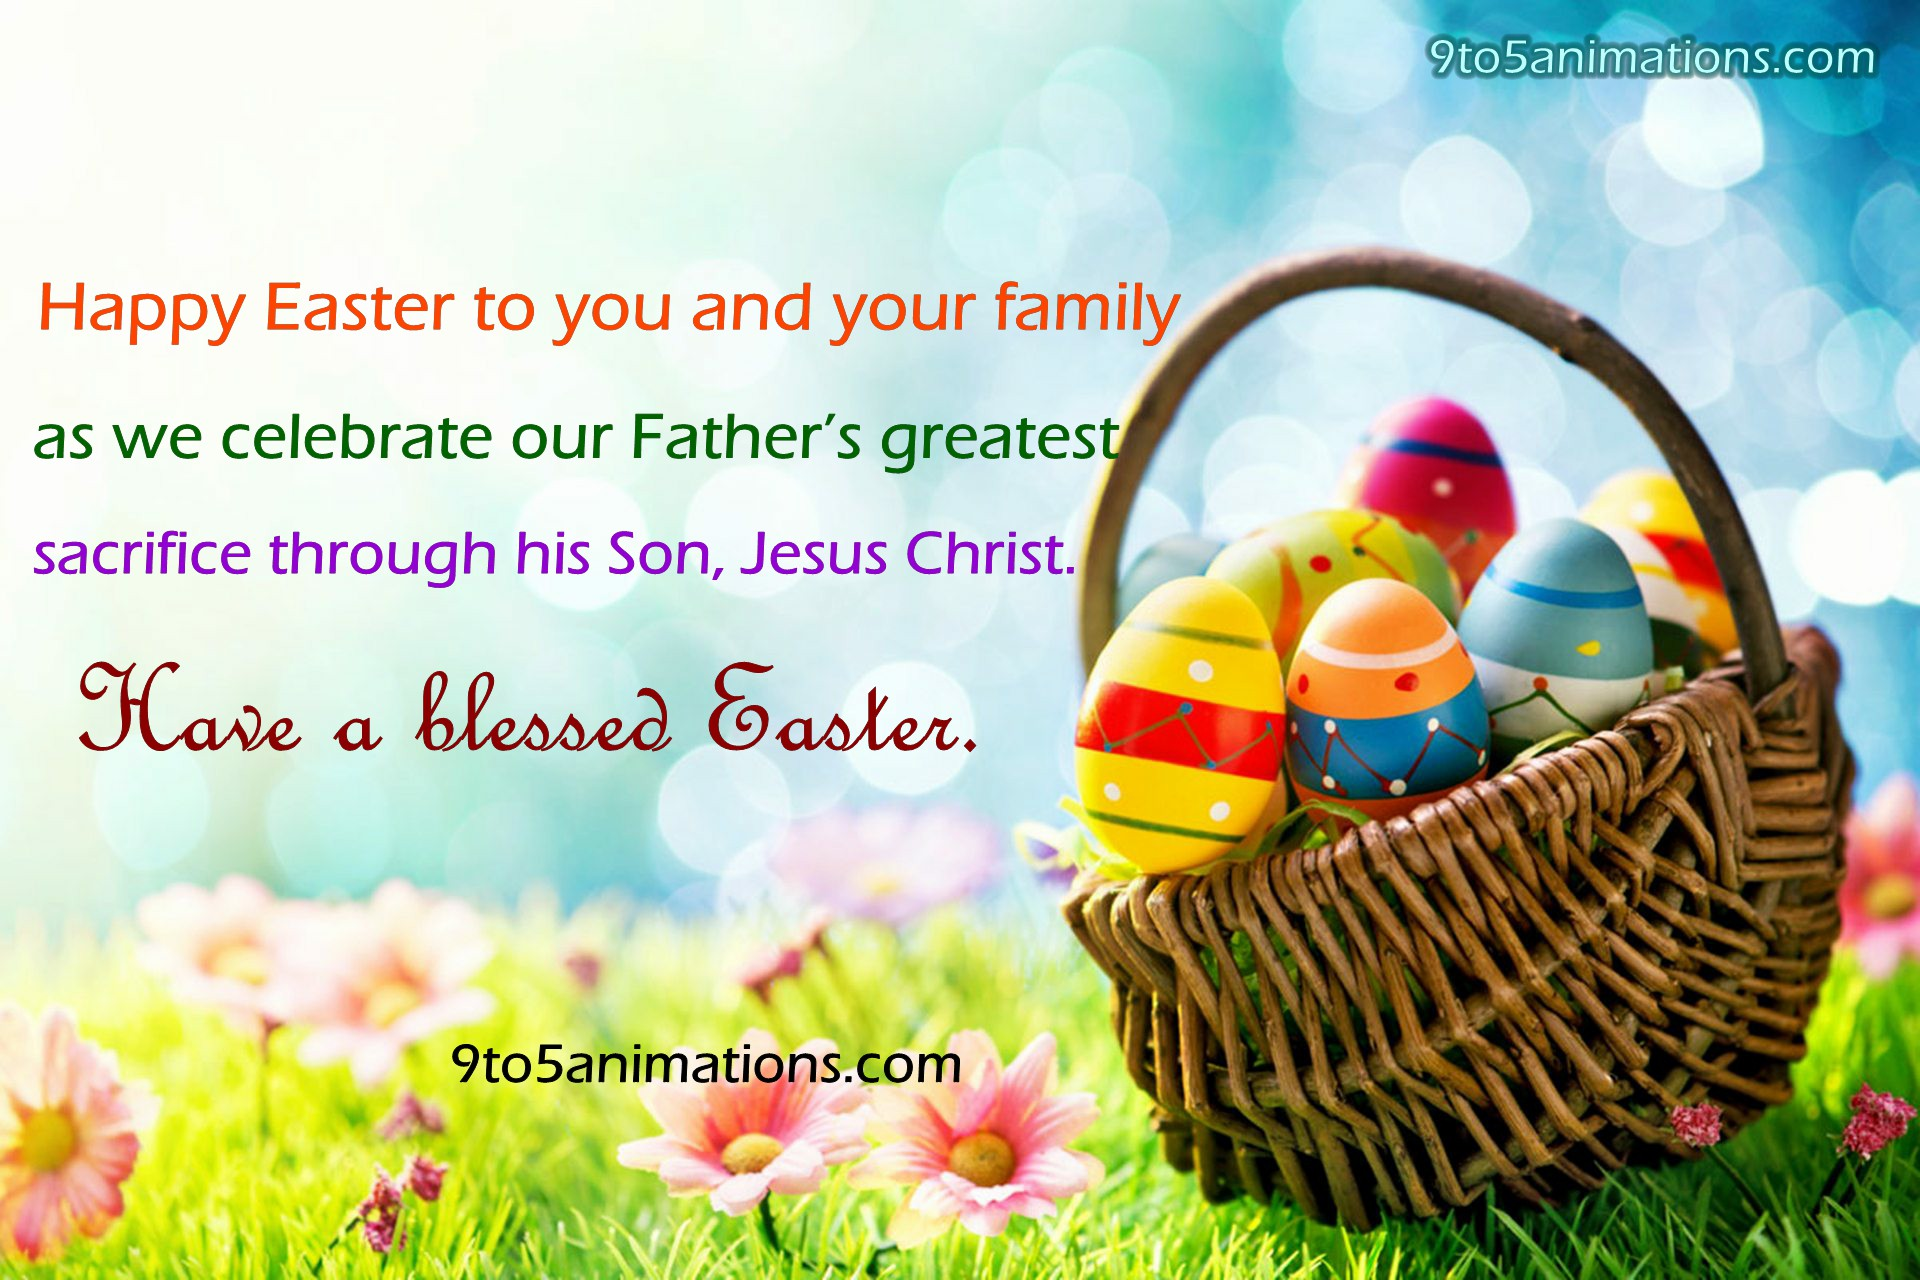 Easter Wishes Quotes HD Wallpapers 9To5AnimationsCom 1920x1280